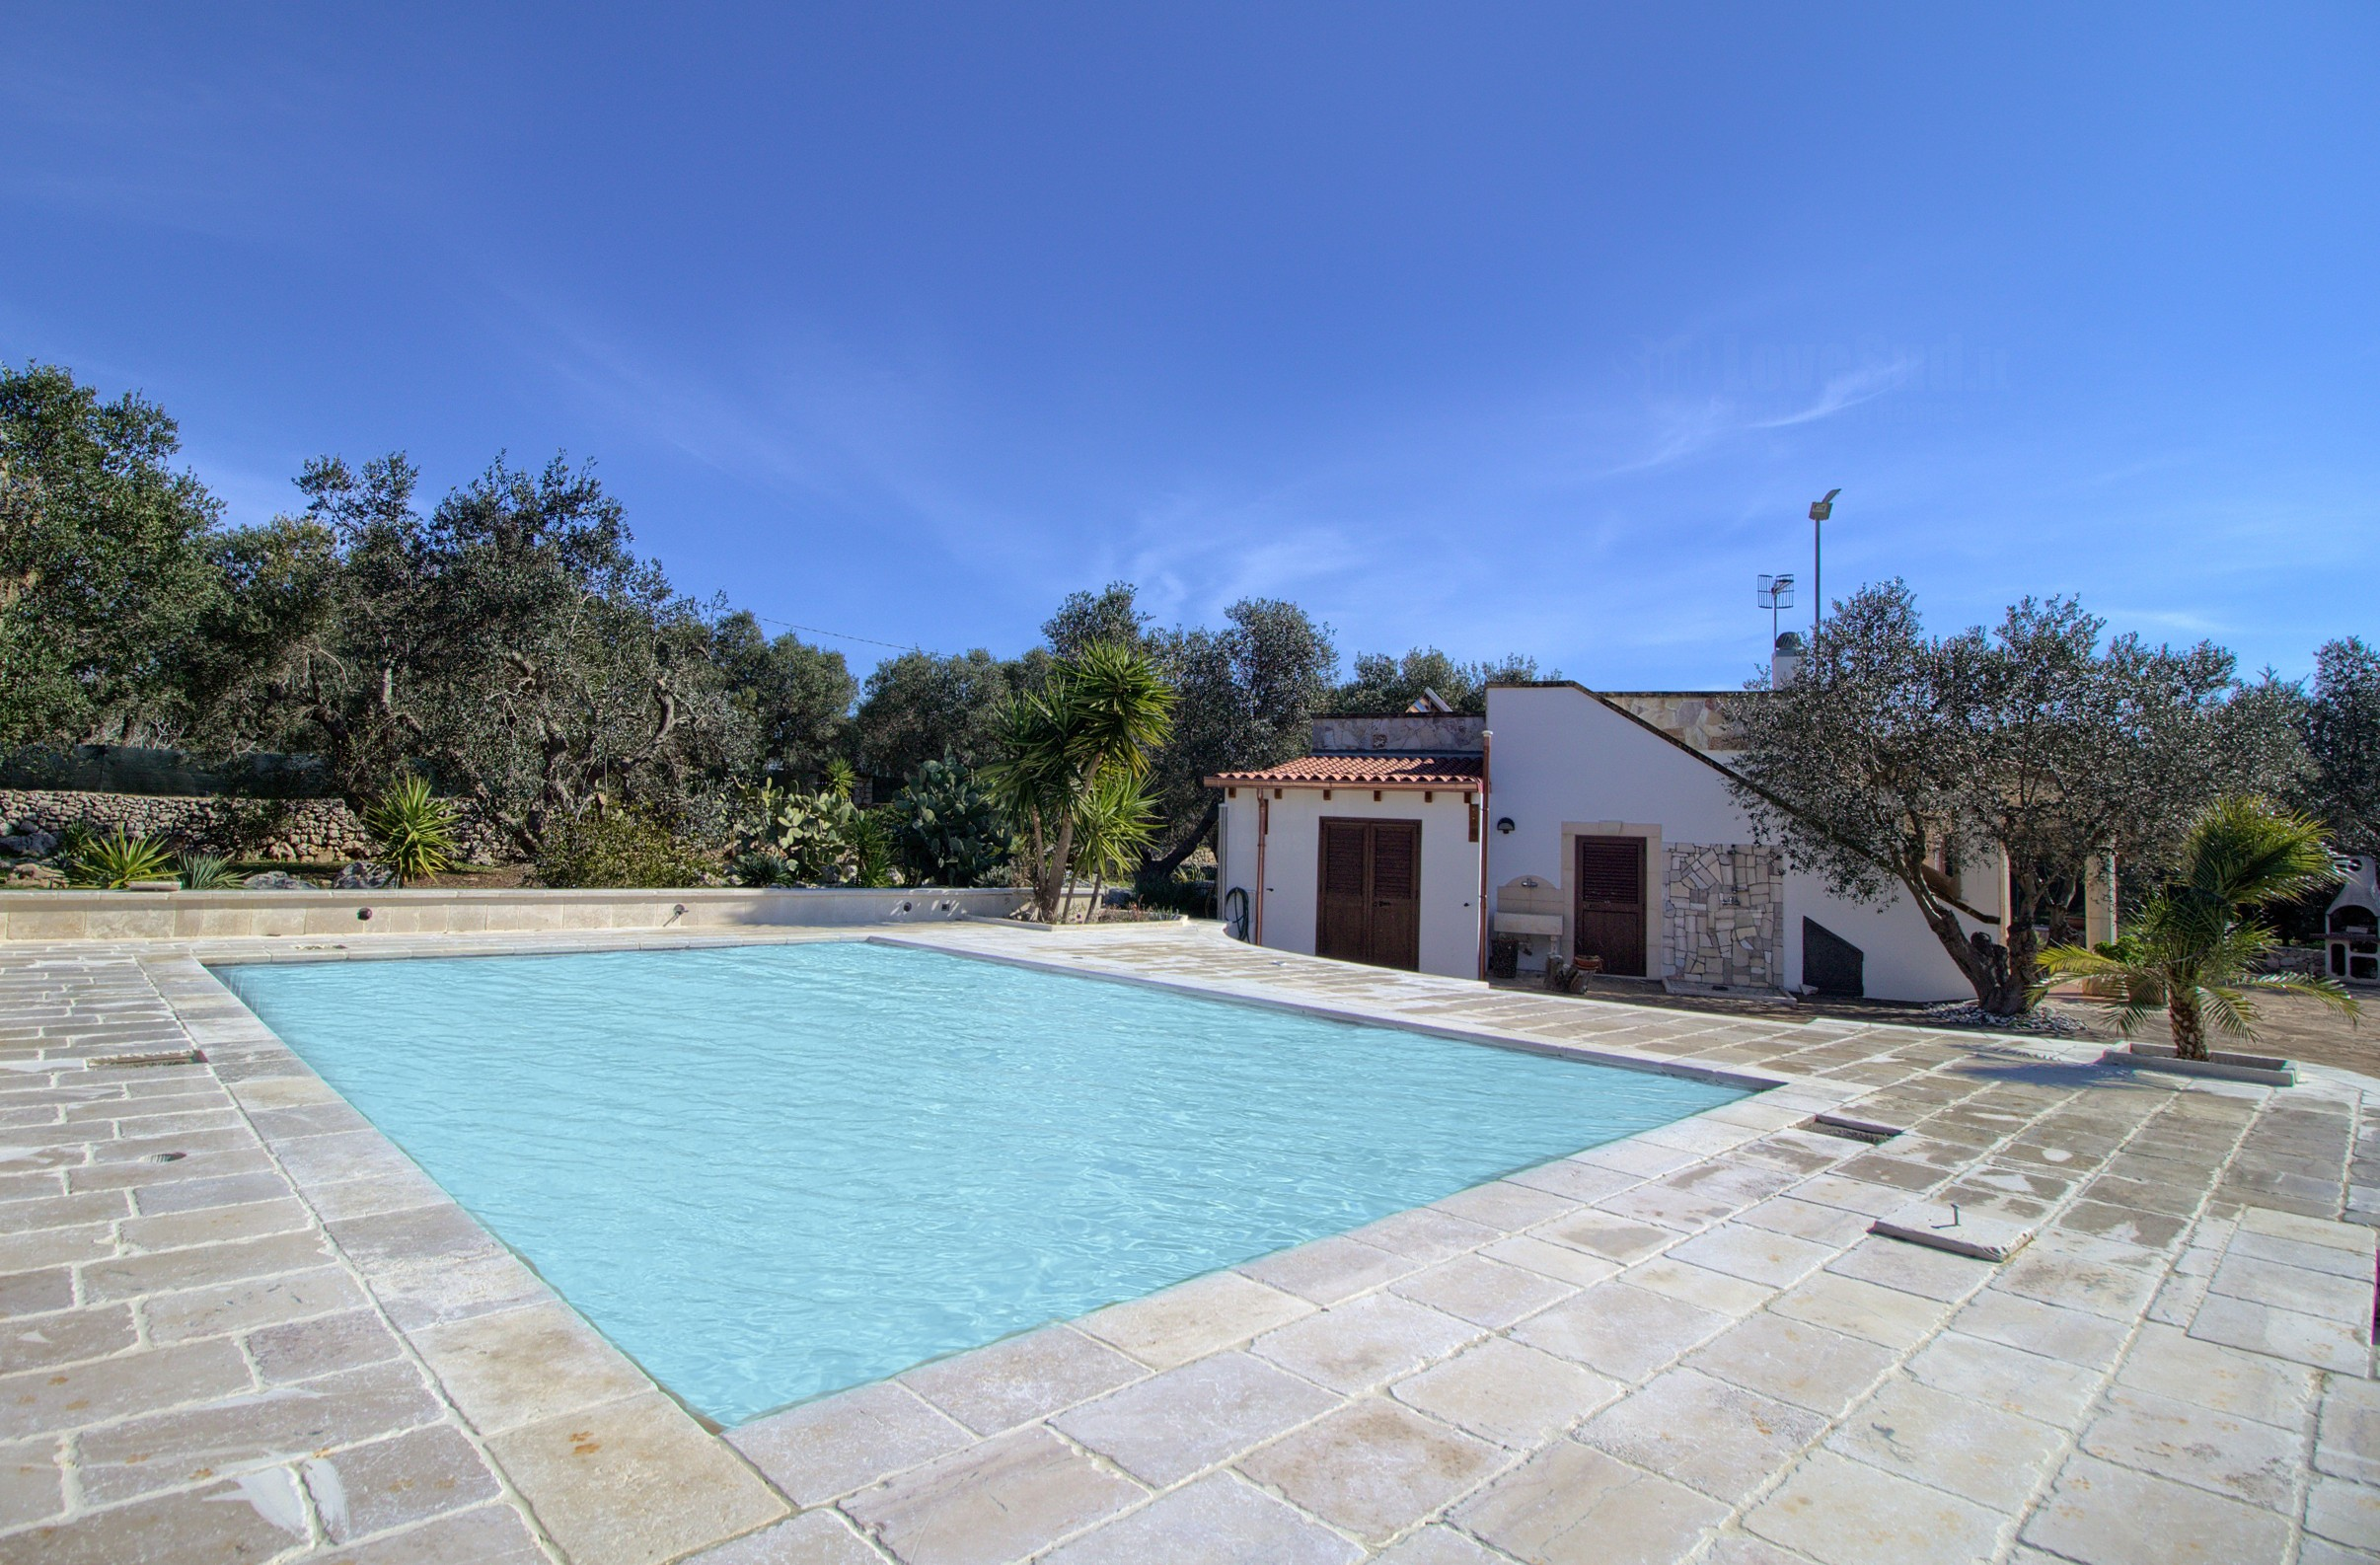 Cavaliere lovely pool home photo 22517543